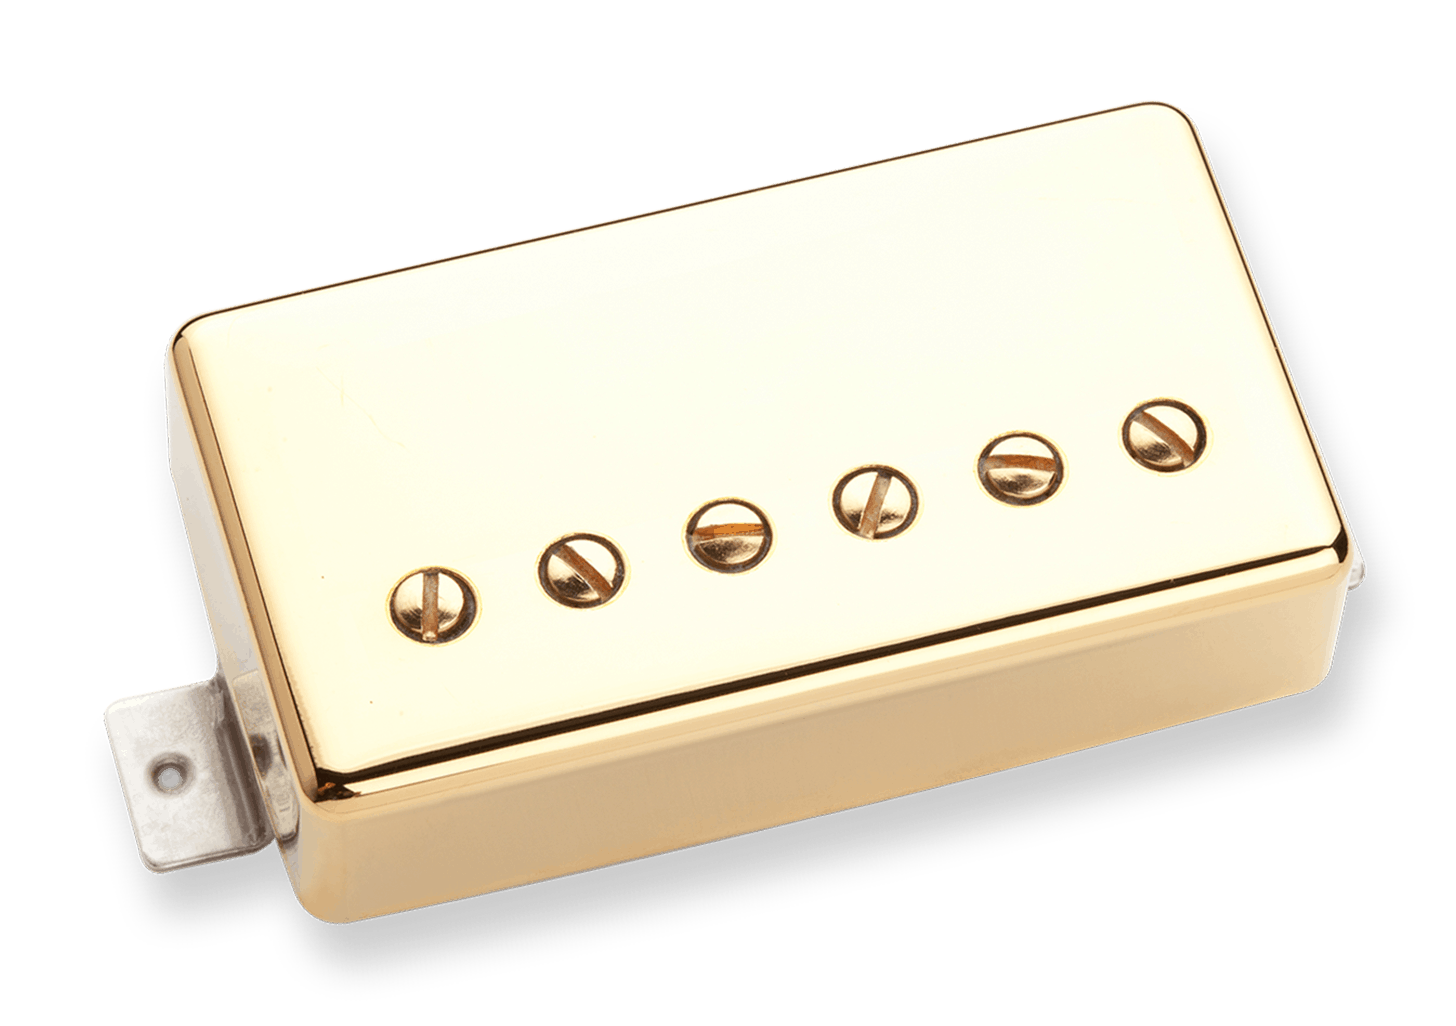 Alnico 5 Medium Output Humbucker Pickup 11102 84 GC